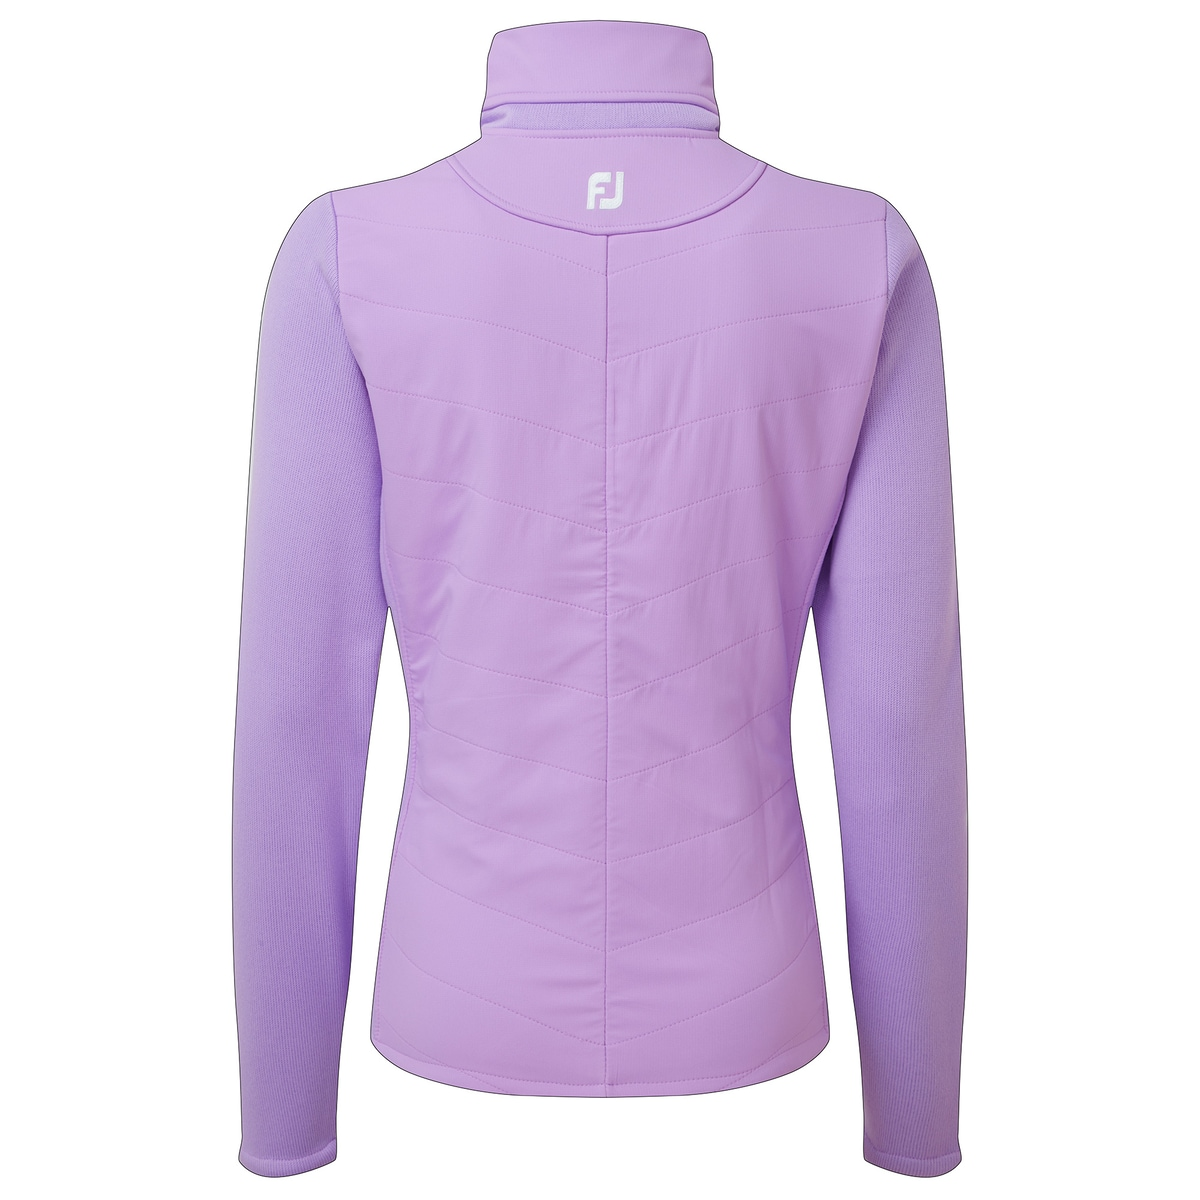 FJ Thermal Steppjacke Damen